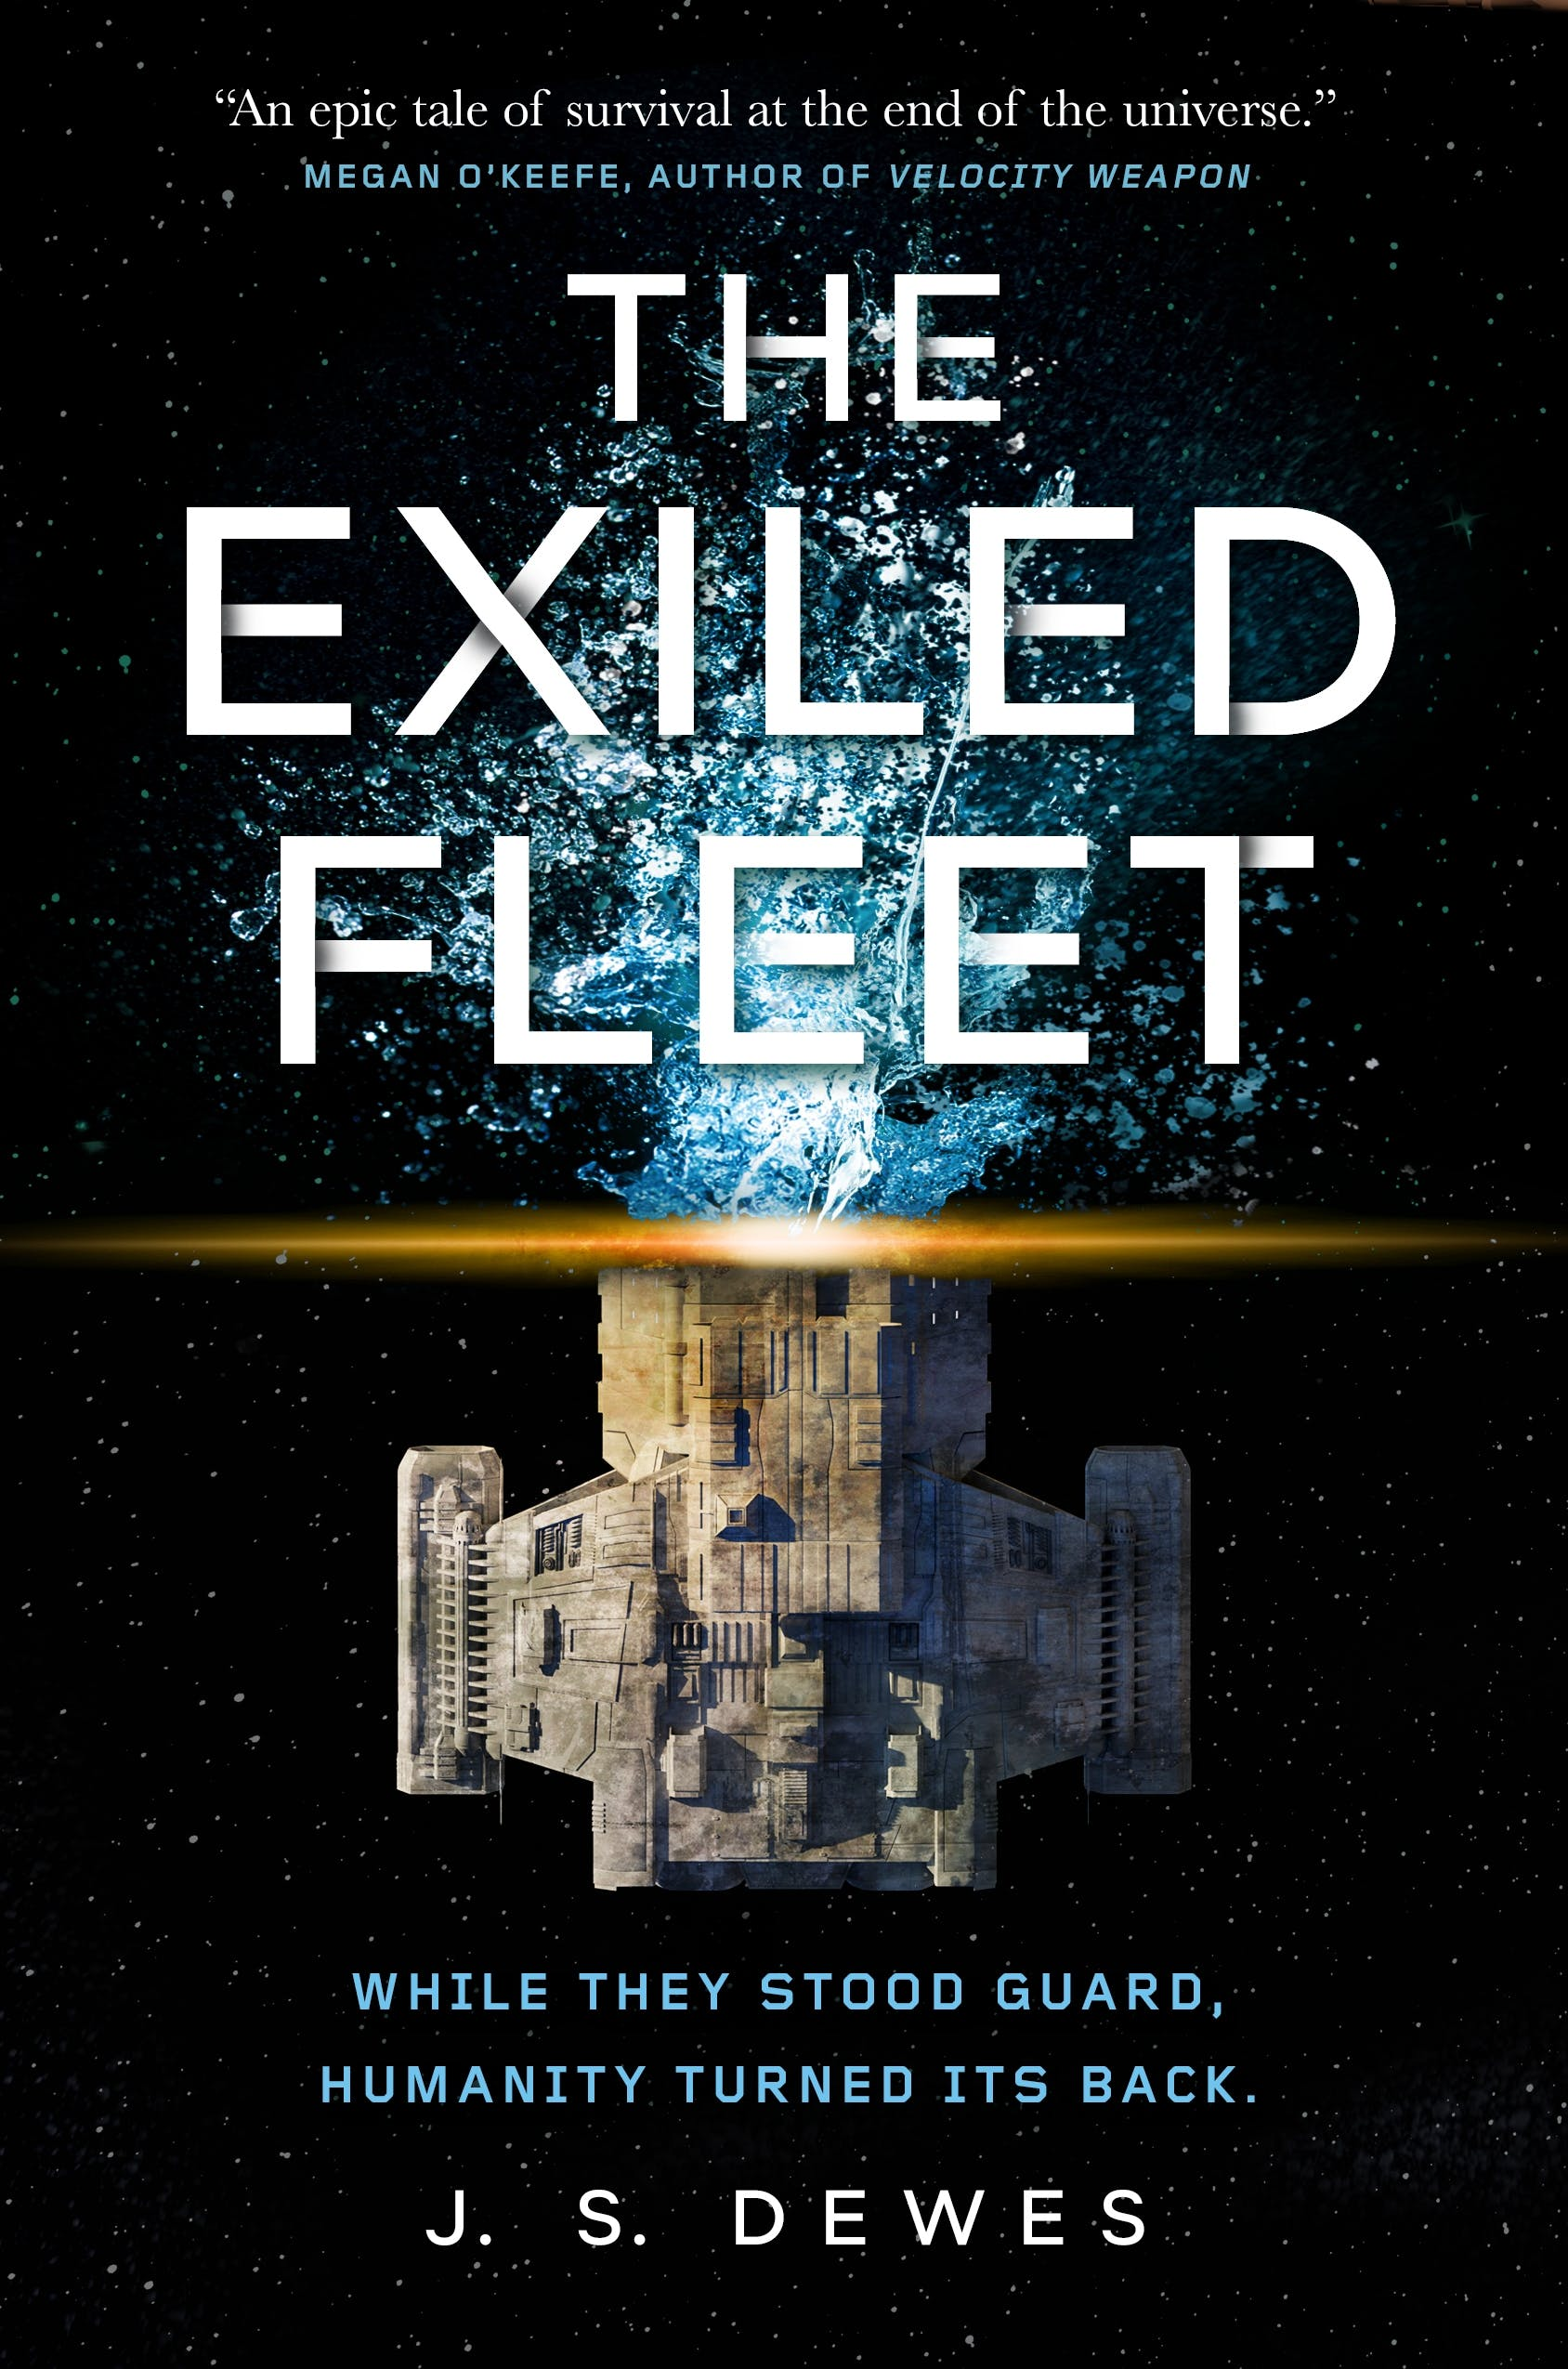 Image of The Exiled Fleet